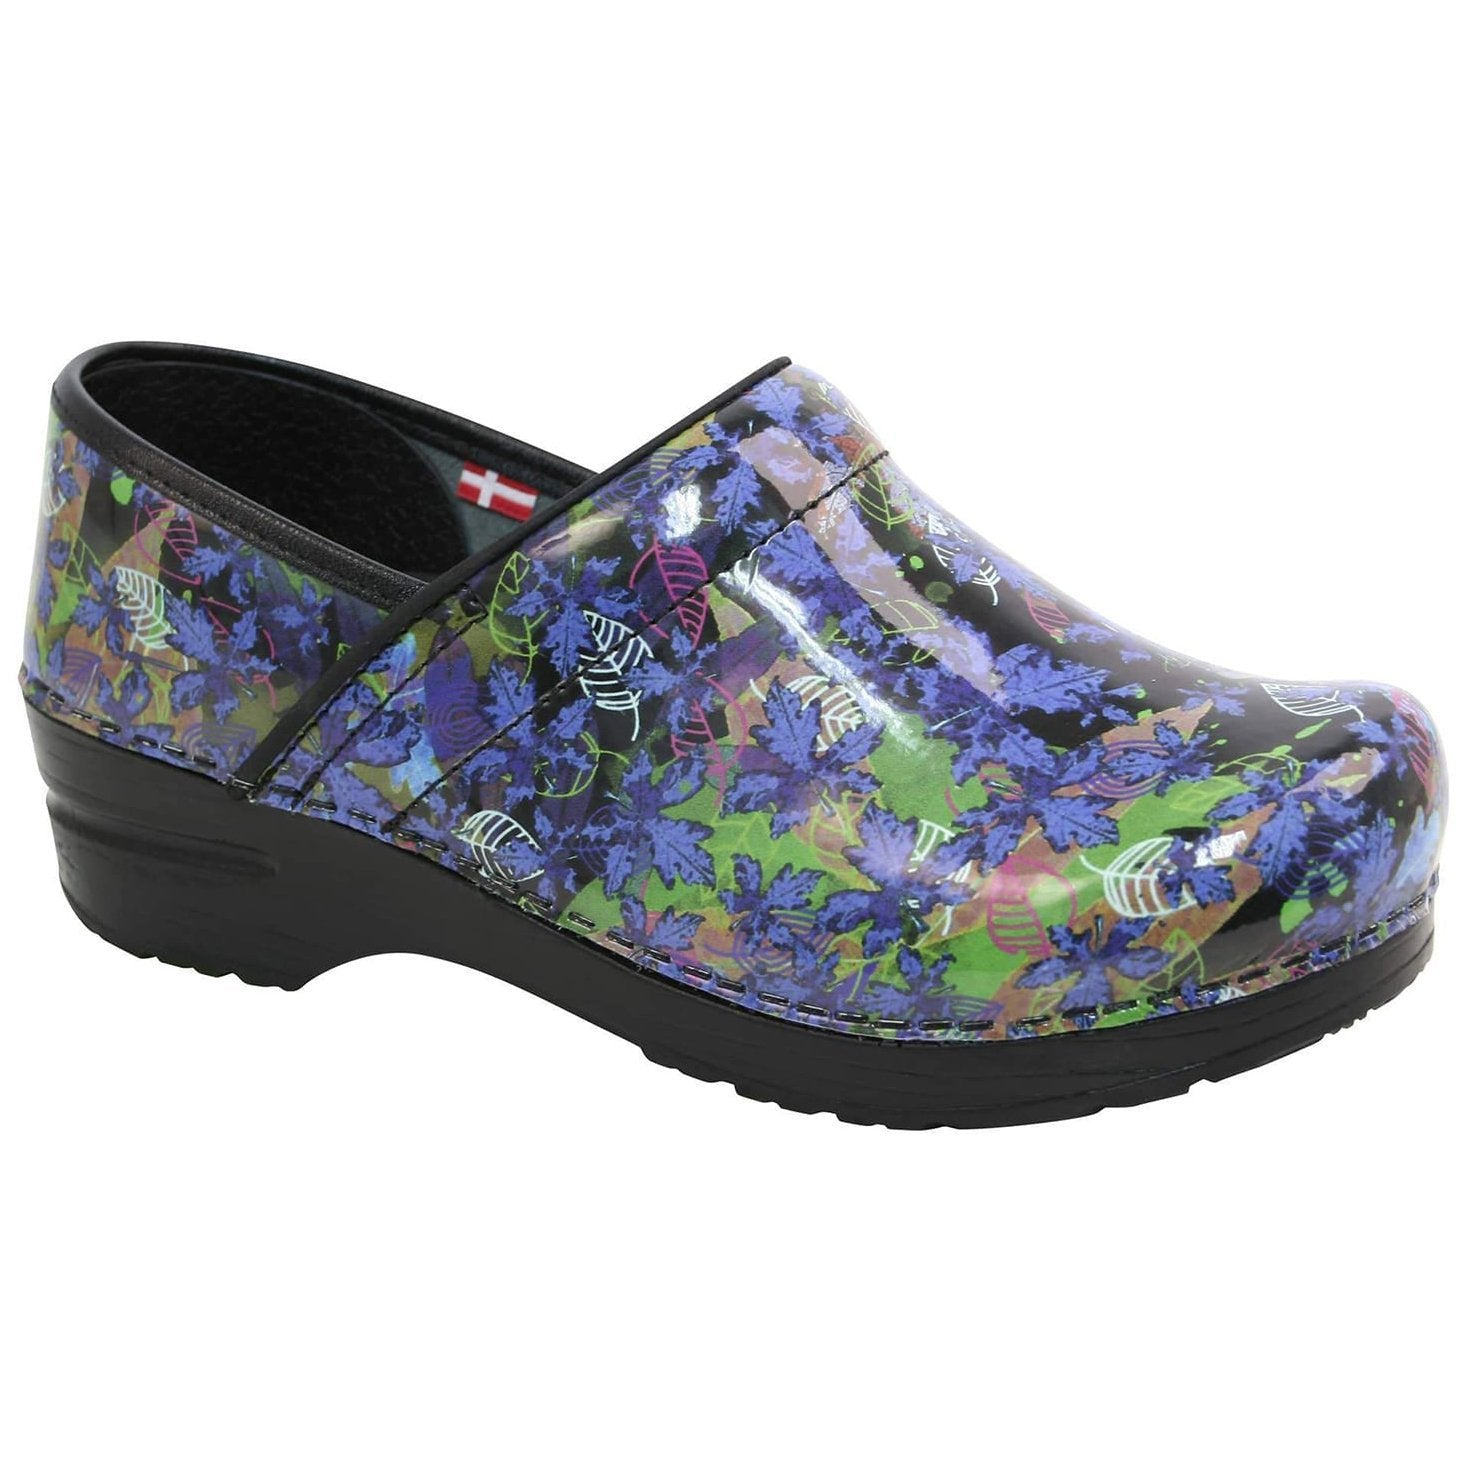 Sanita Fantasia Women's Closed Back Clog